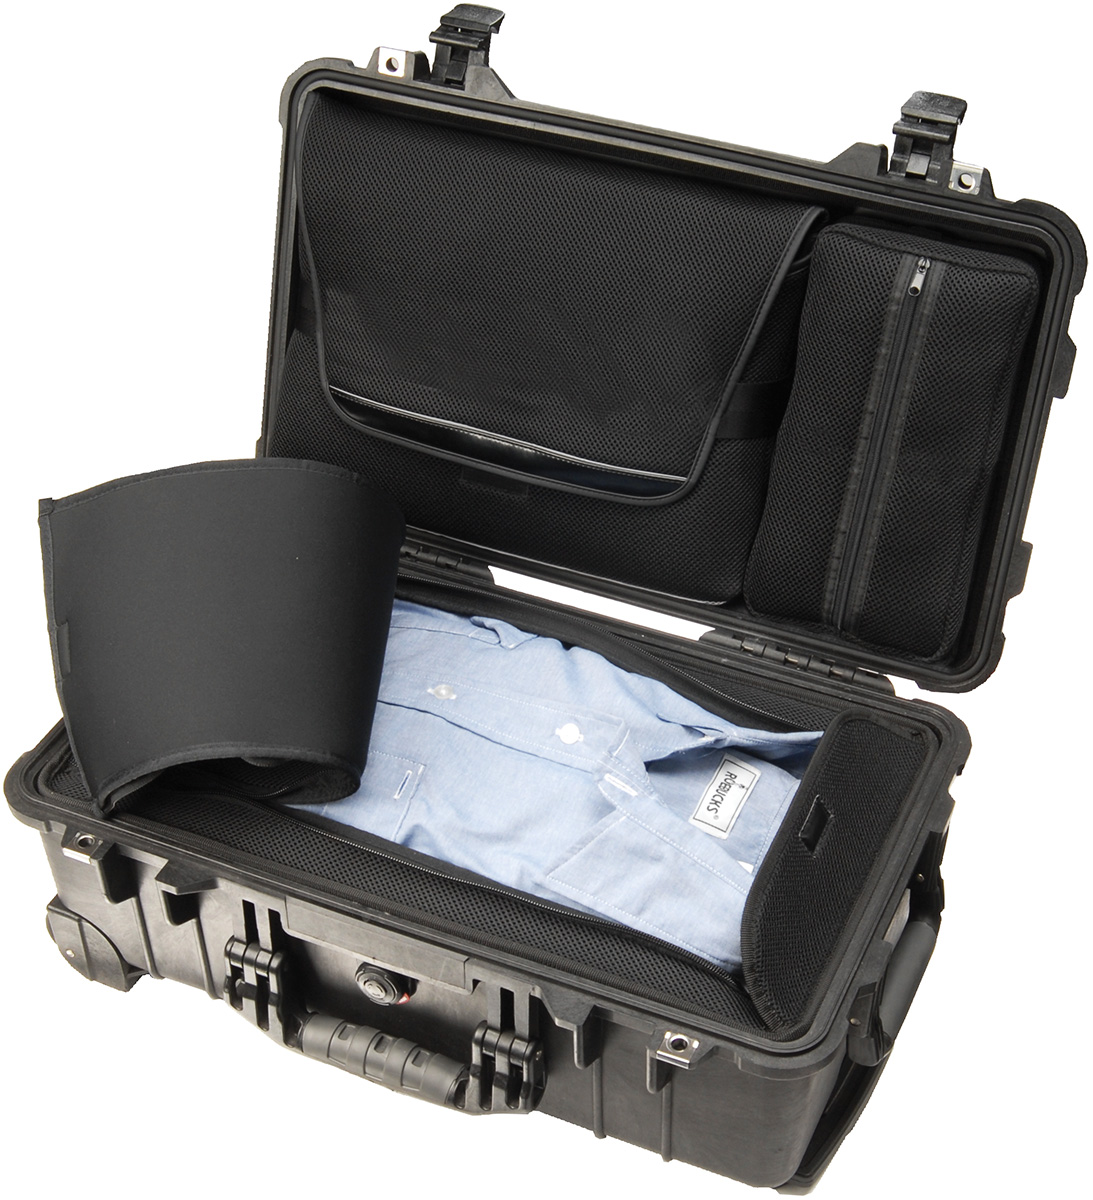 pelican peli products 1510LOC 1500 laptop luggage carryon case